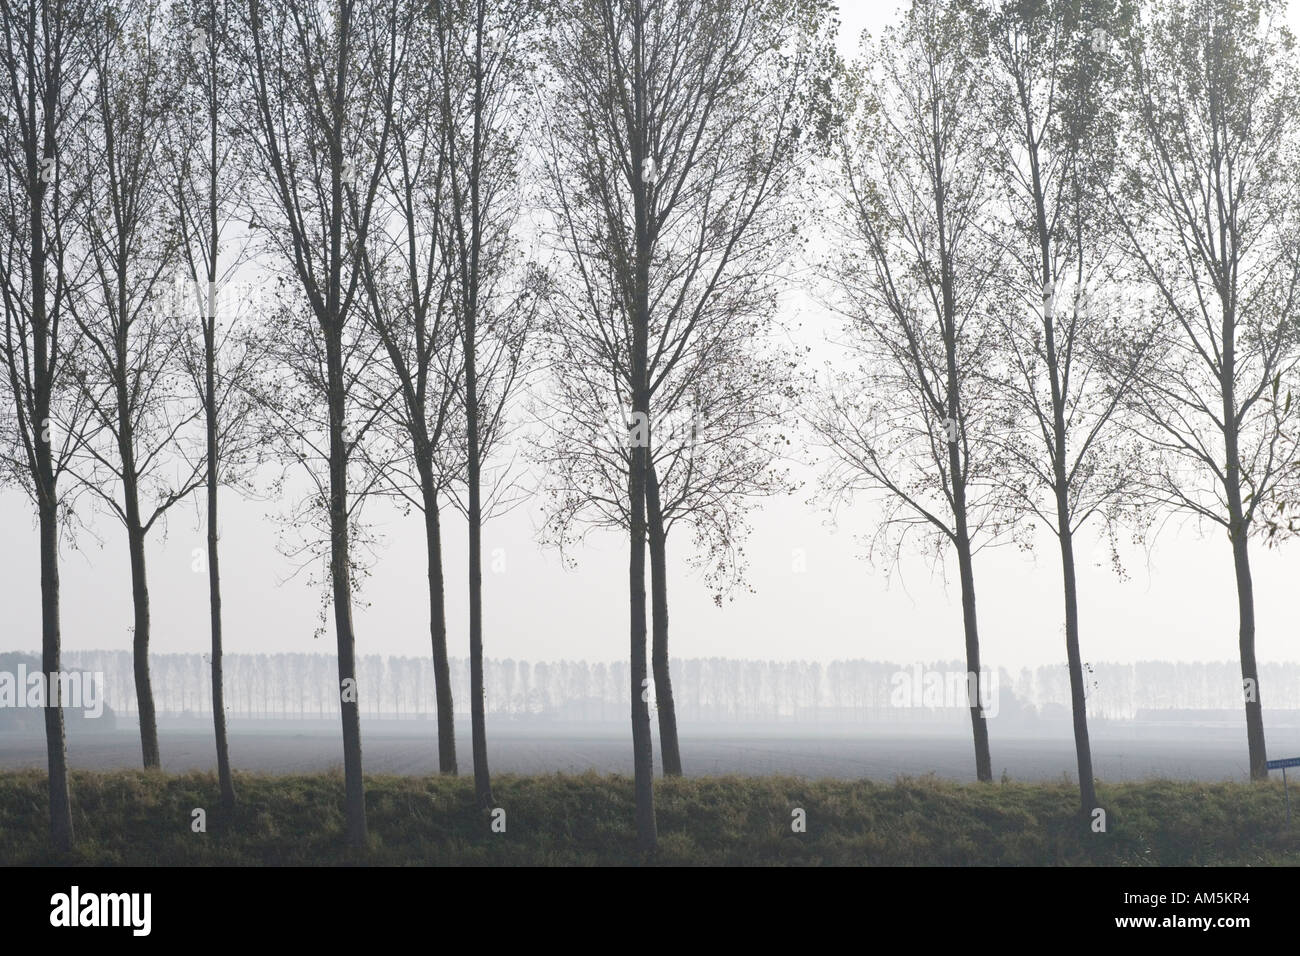 https://c7.alamy.com/comp/AM5KR4/poplars-as-wind-barrier-on-a-levee-or-dyke-or-dike-around-a-polder-AM5KR4.jpg